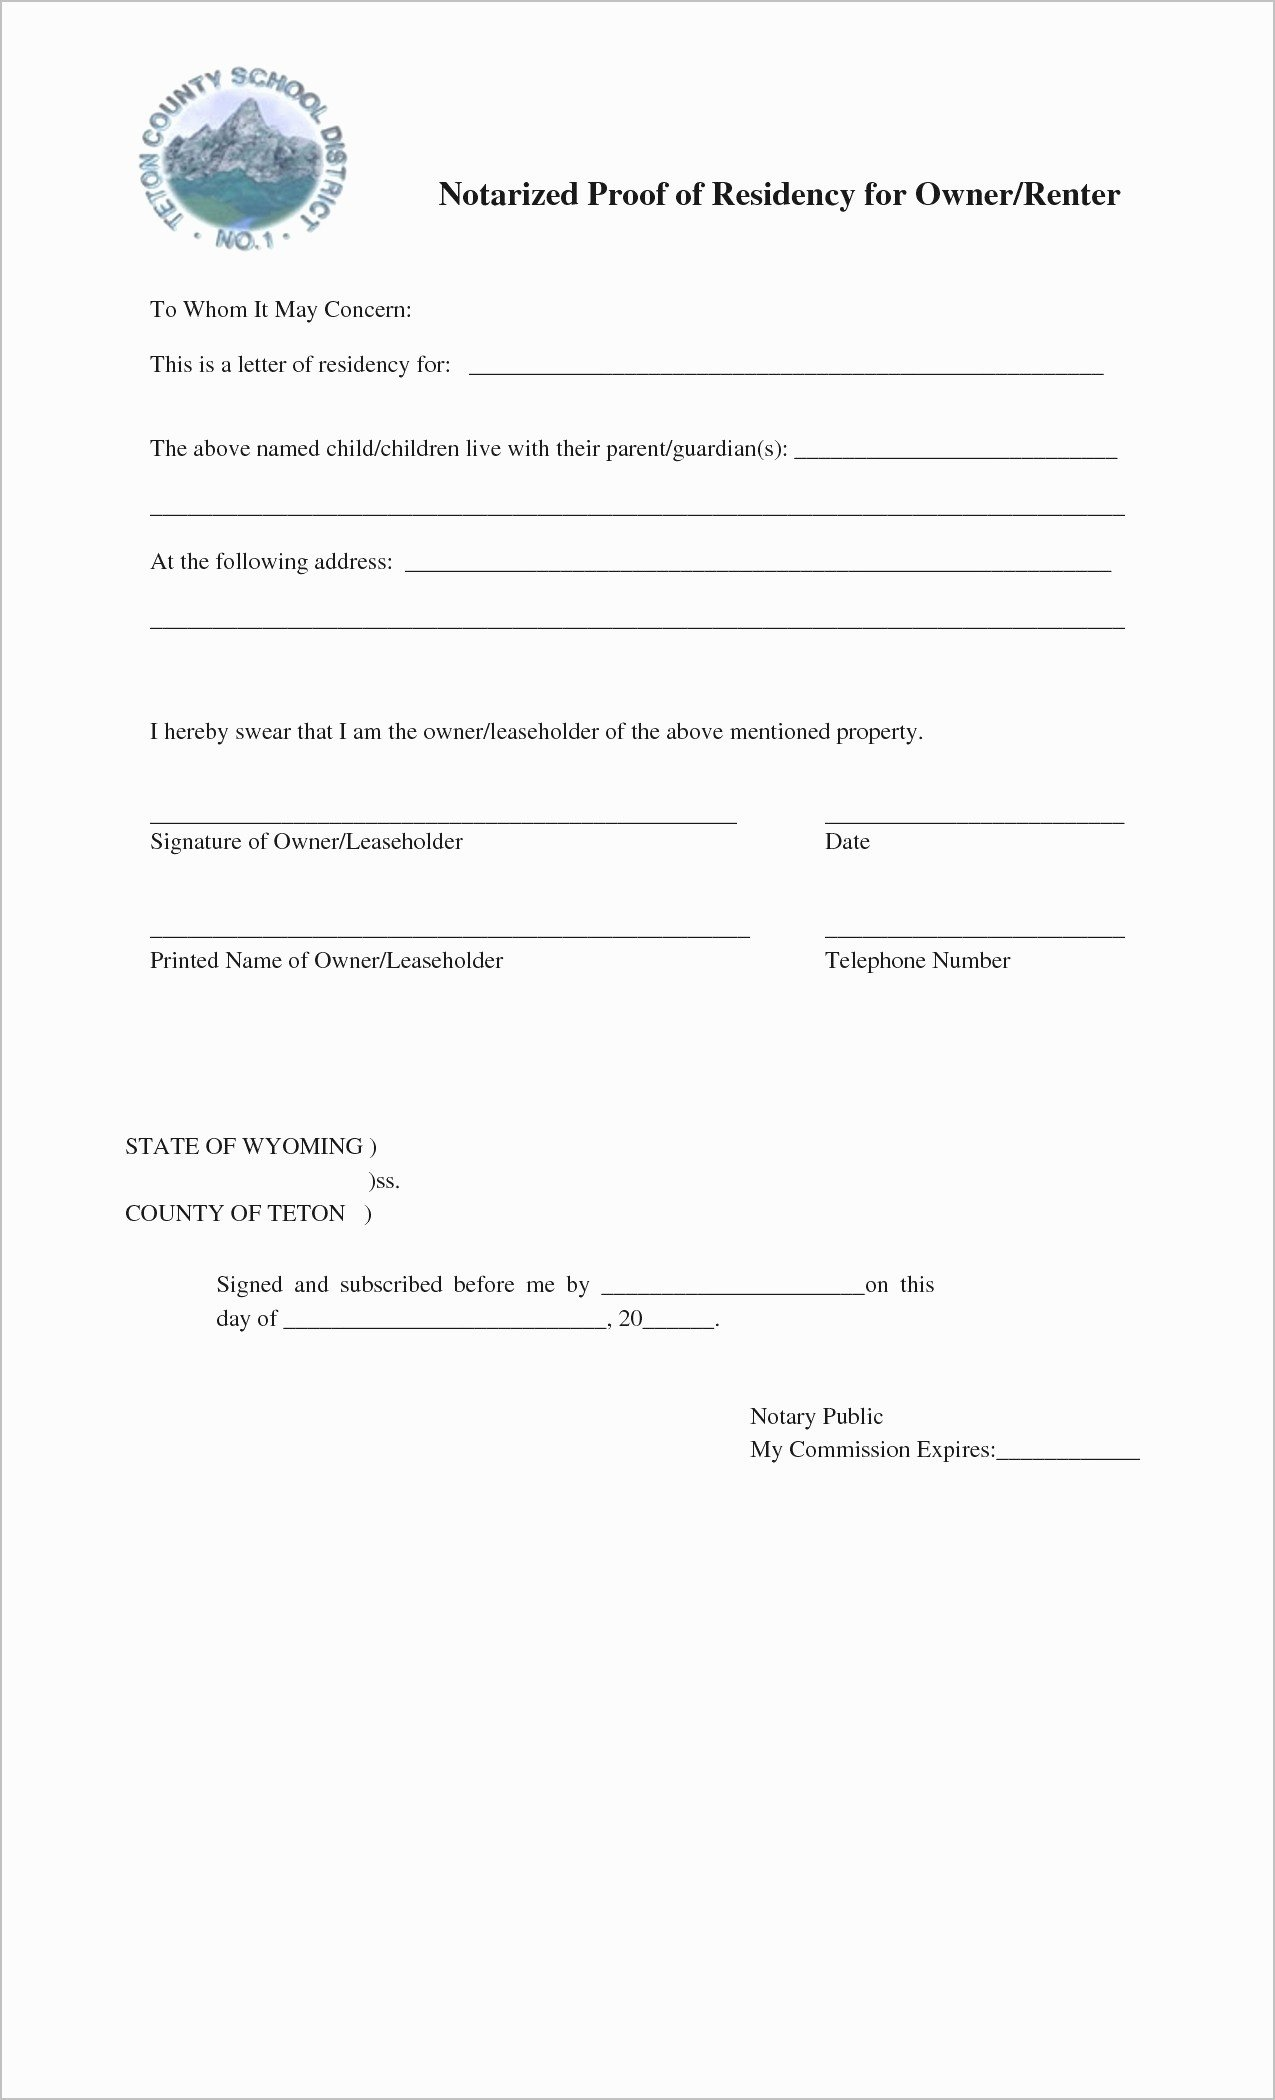 Notary Public Letter Template New Notary Public Proof Residency